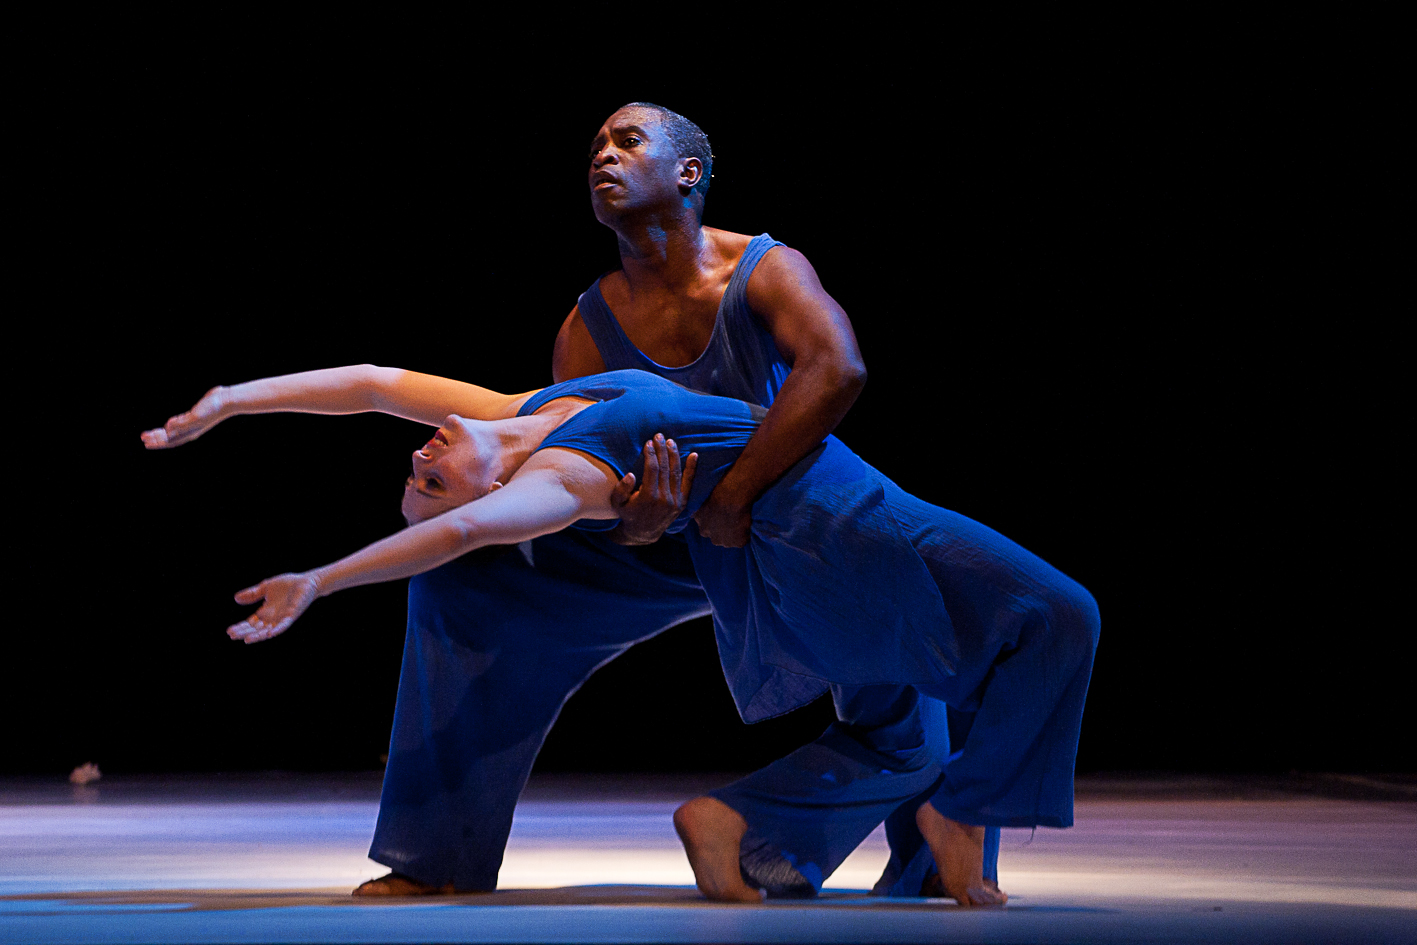 As one of Coreoarte's leading dancers, Trinidad and Tobago's Terry Springer brings his Caribbean essence to the stage in this duet. Photo courtesy Coreoarte.